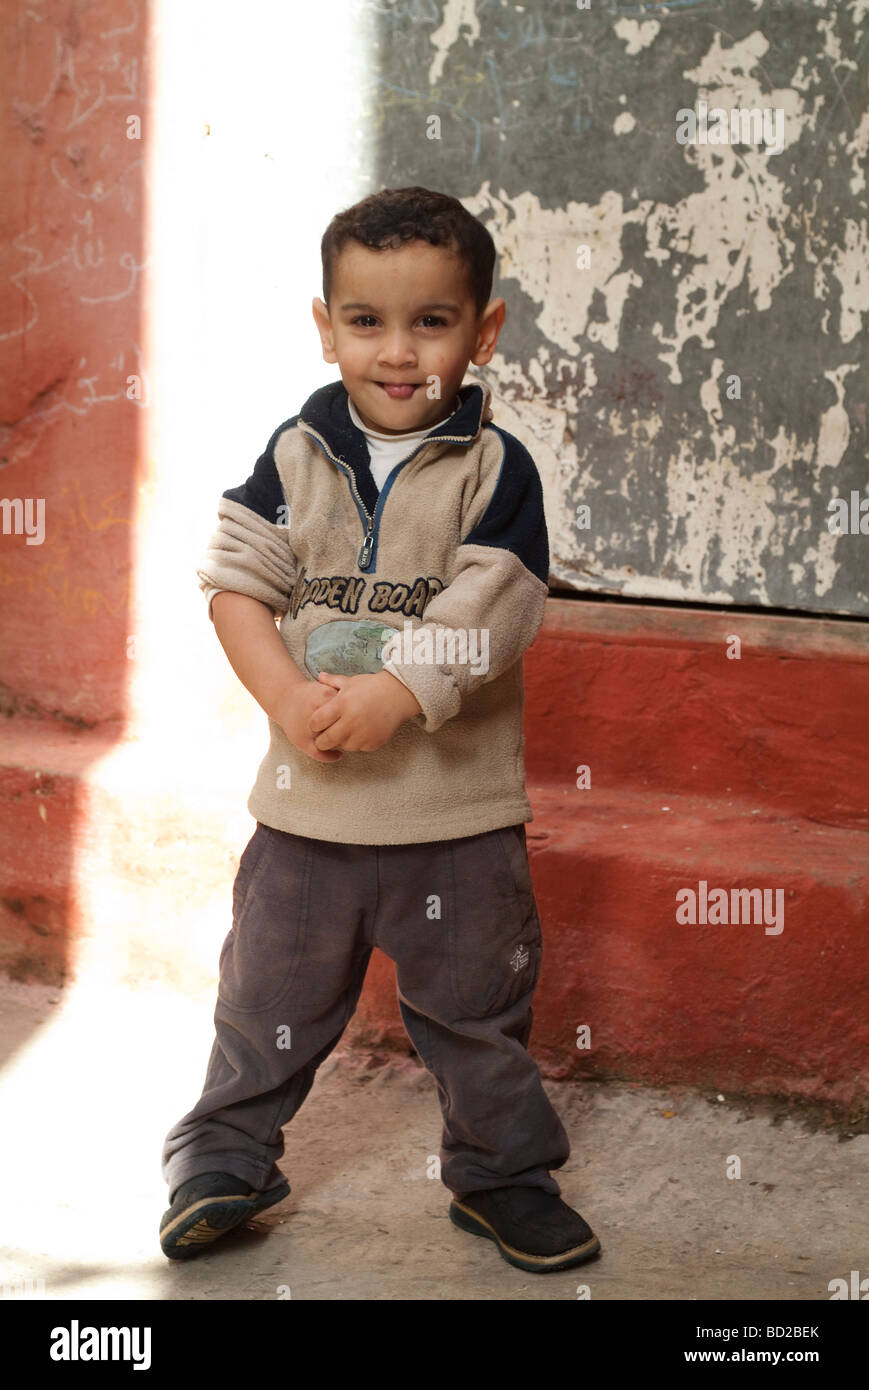 Little boy smiling and sticking his tounge out Tangier Morocco - Stock Image